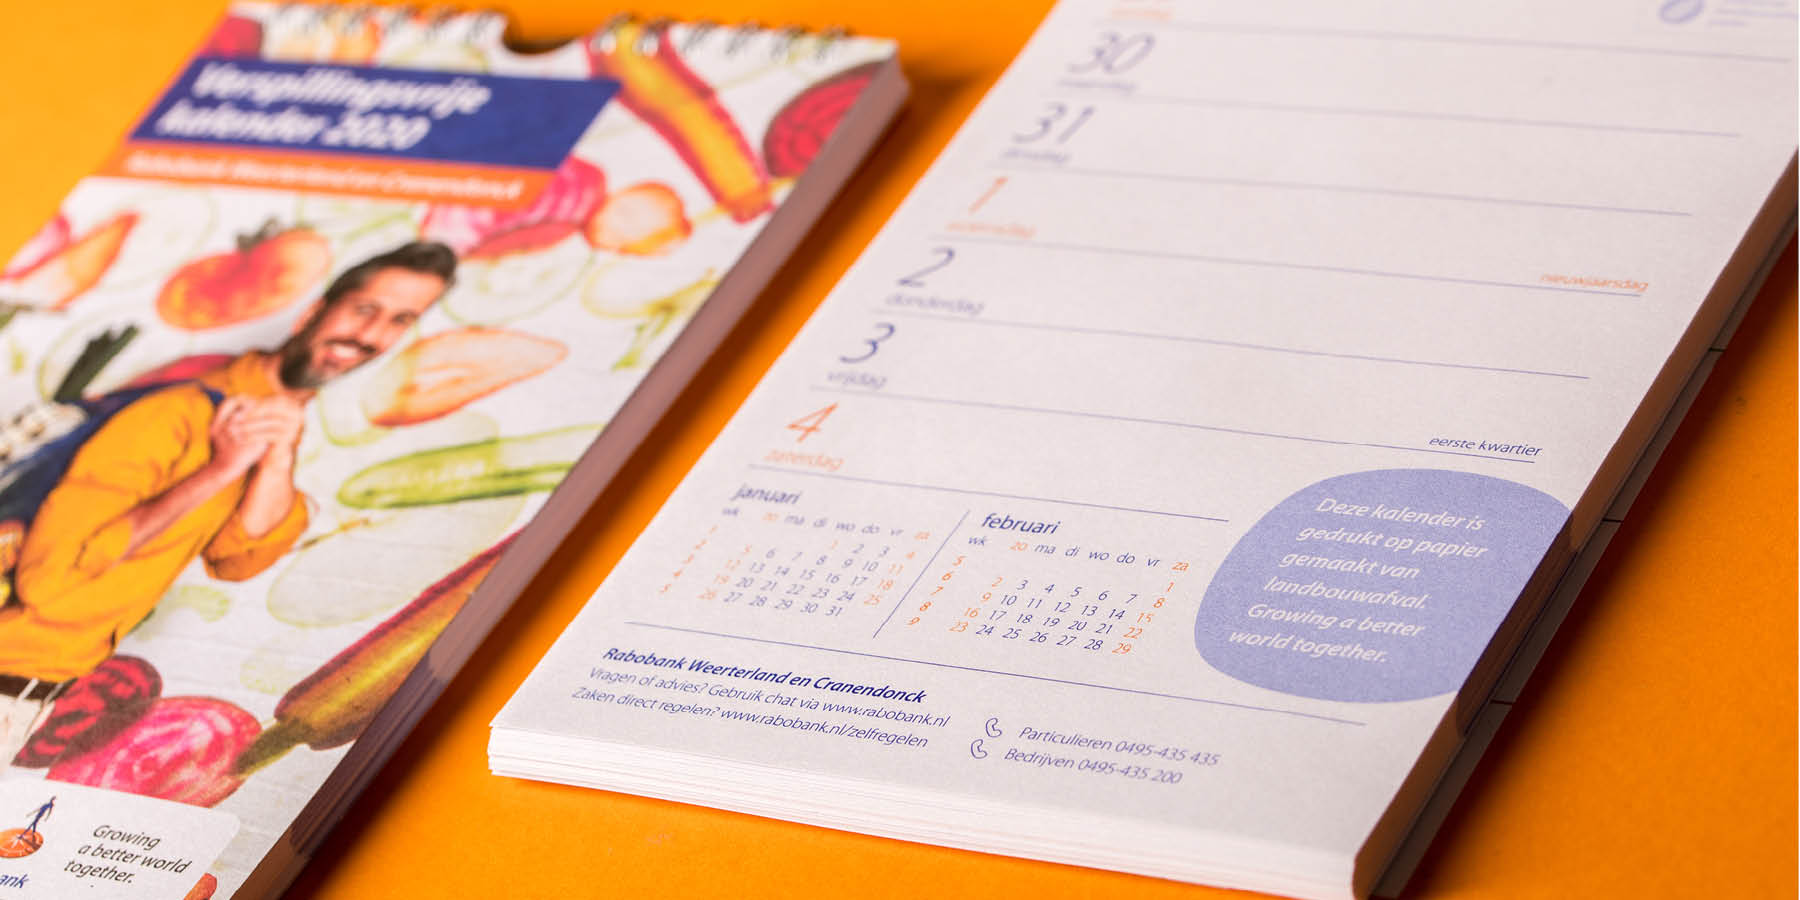 paperwise-environmentally-friendly-natural-paper-stationery-writing-calender-planner-office-printing-rabobank